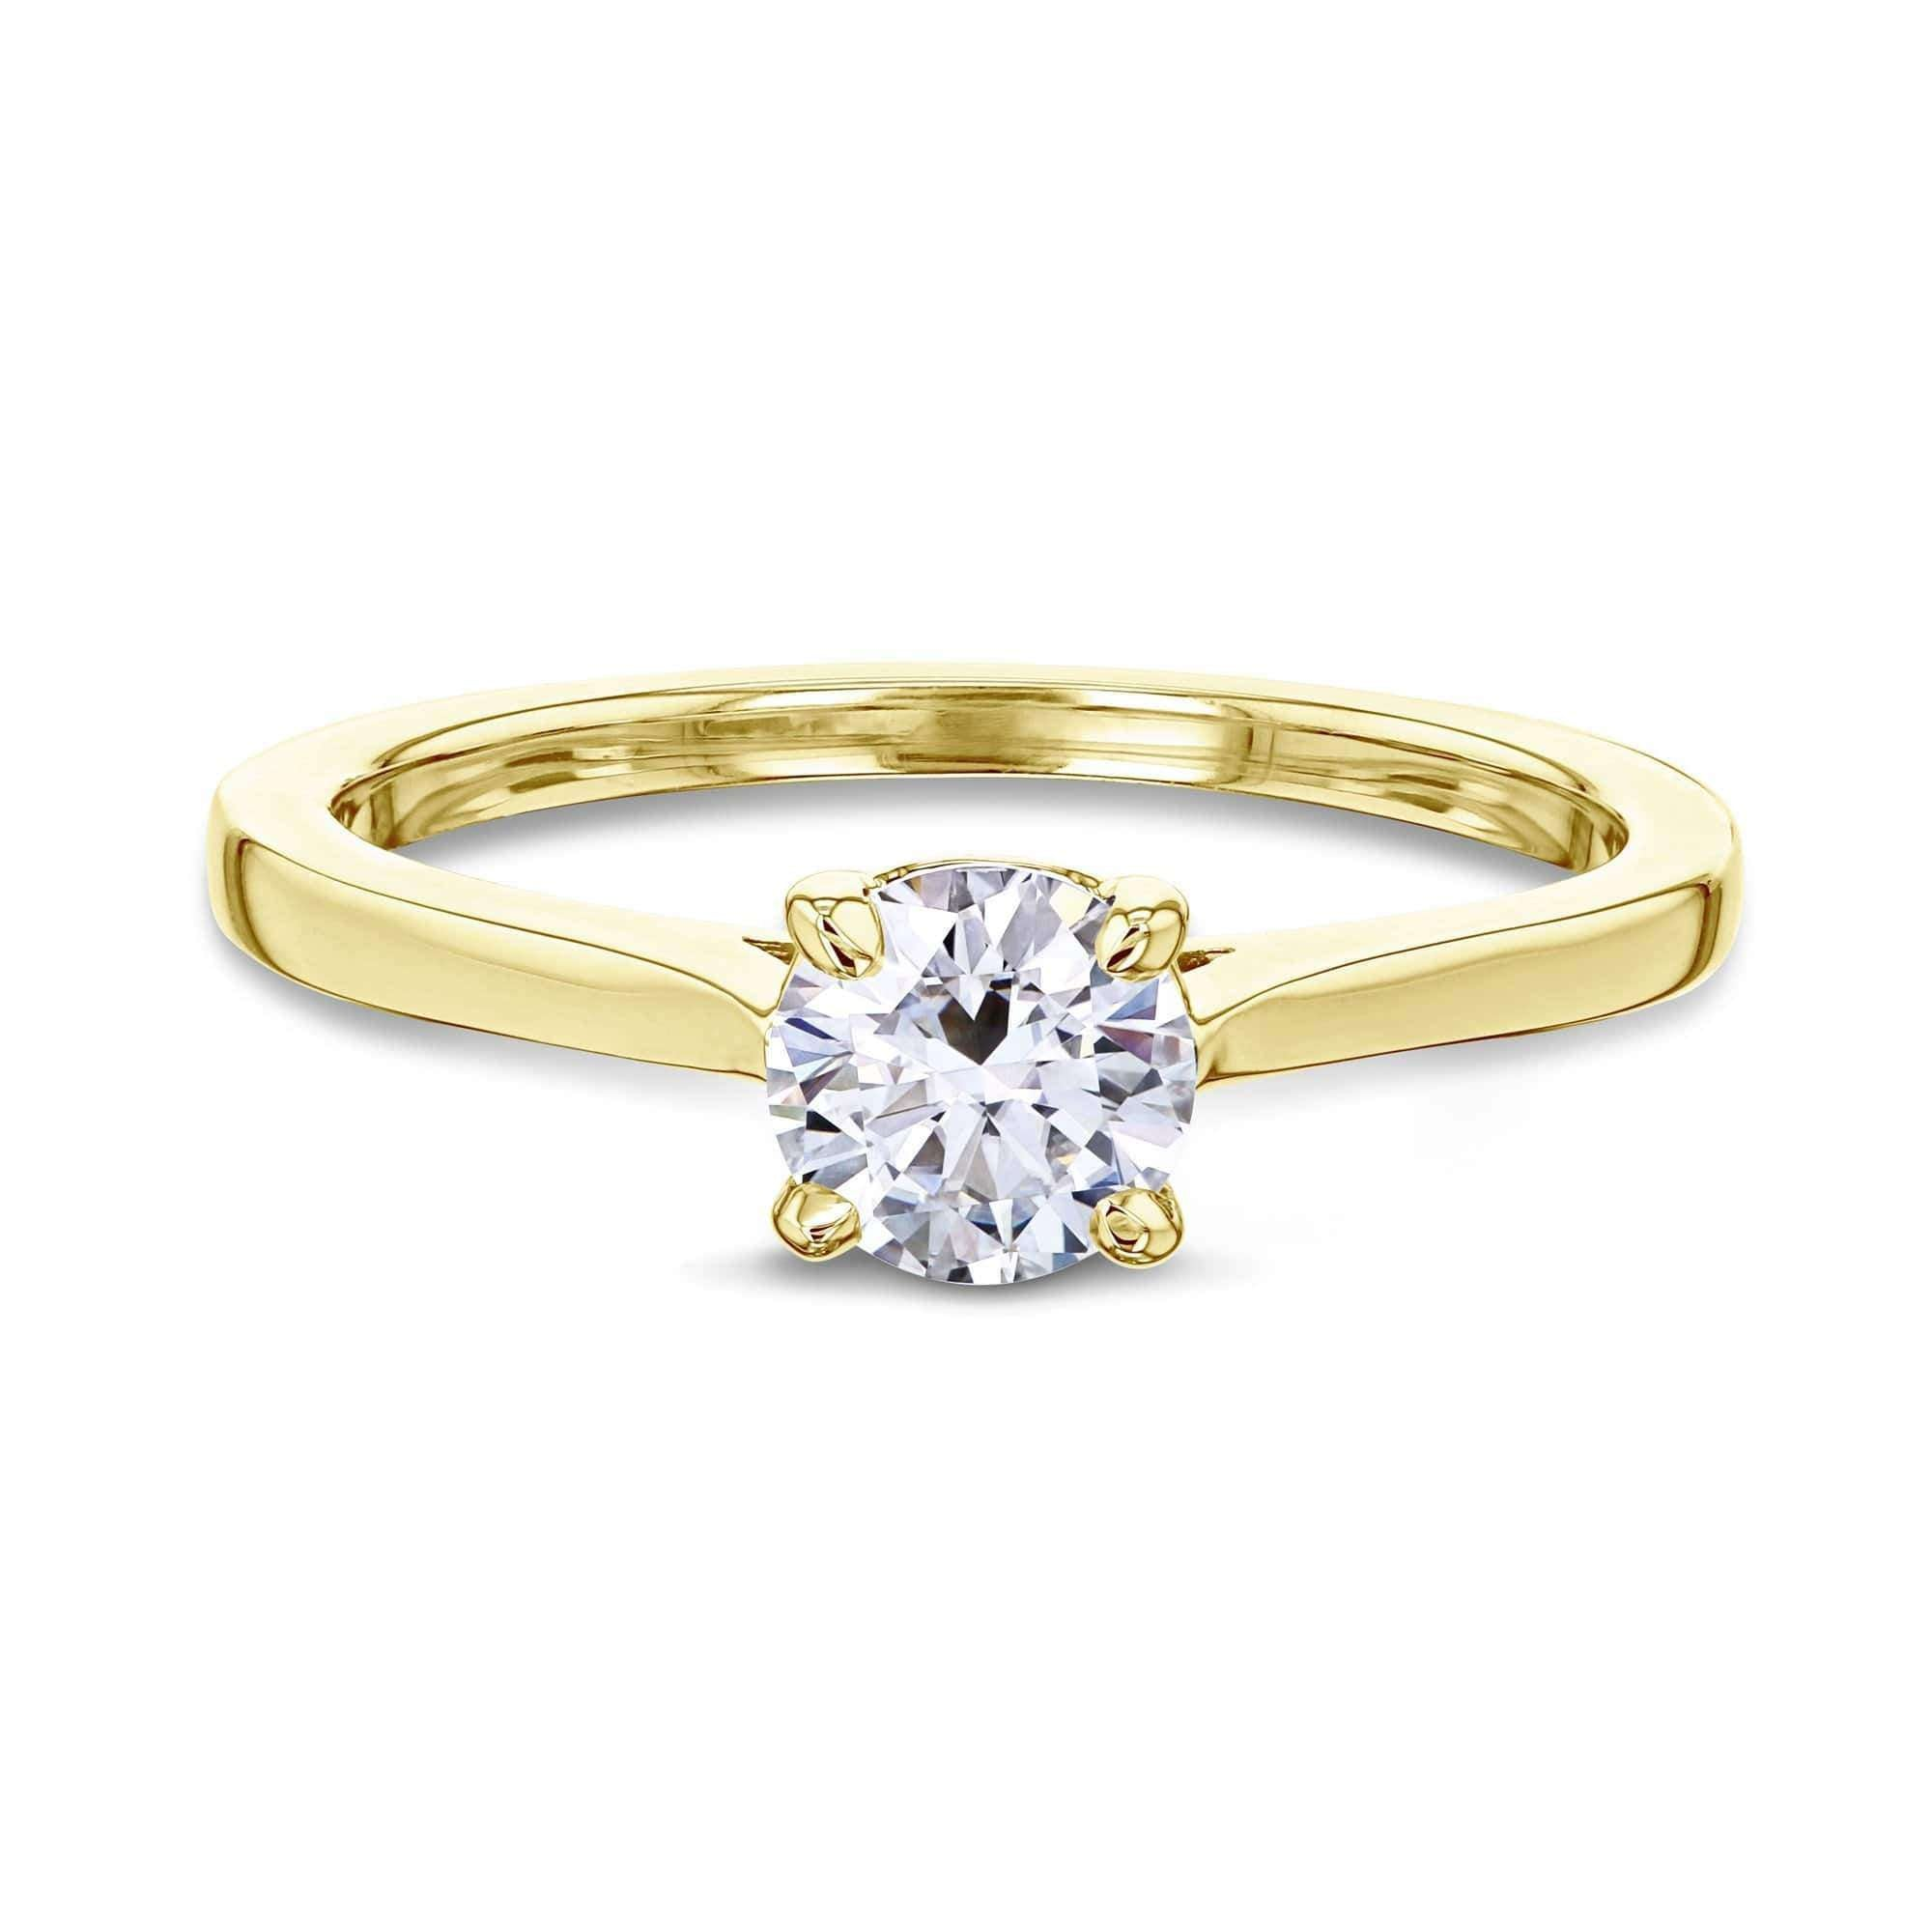 Promos 1/2ct Round Forever One Moissanite Solitaire Ring - yellow-gold 6.0